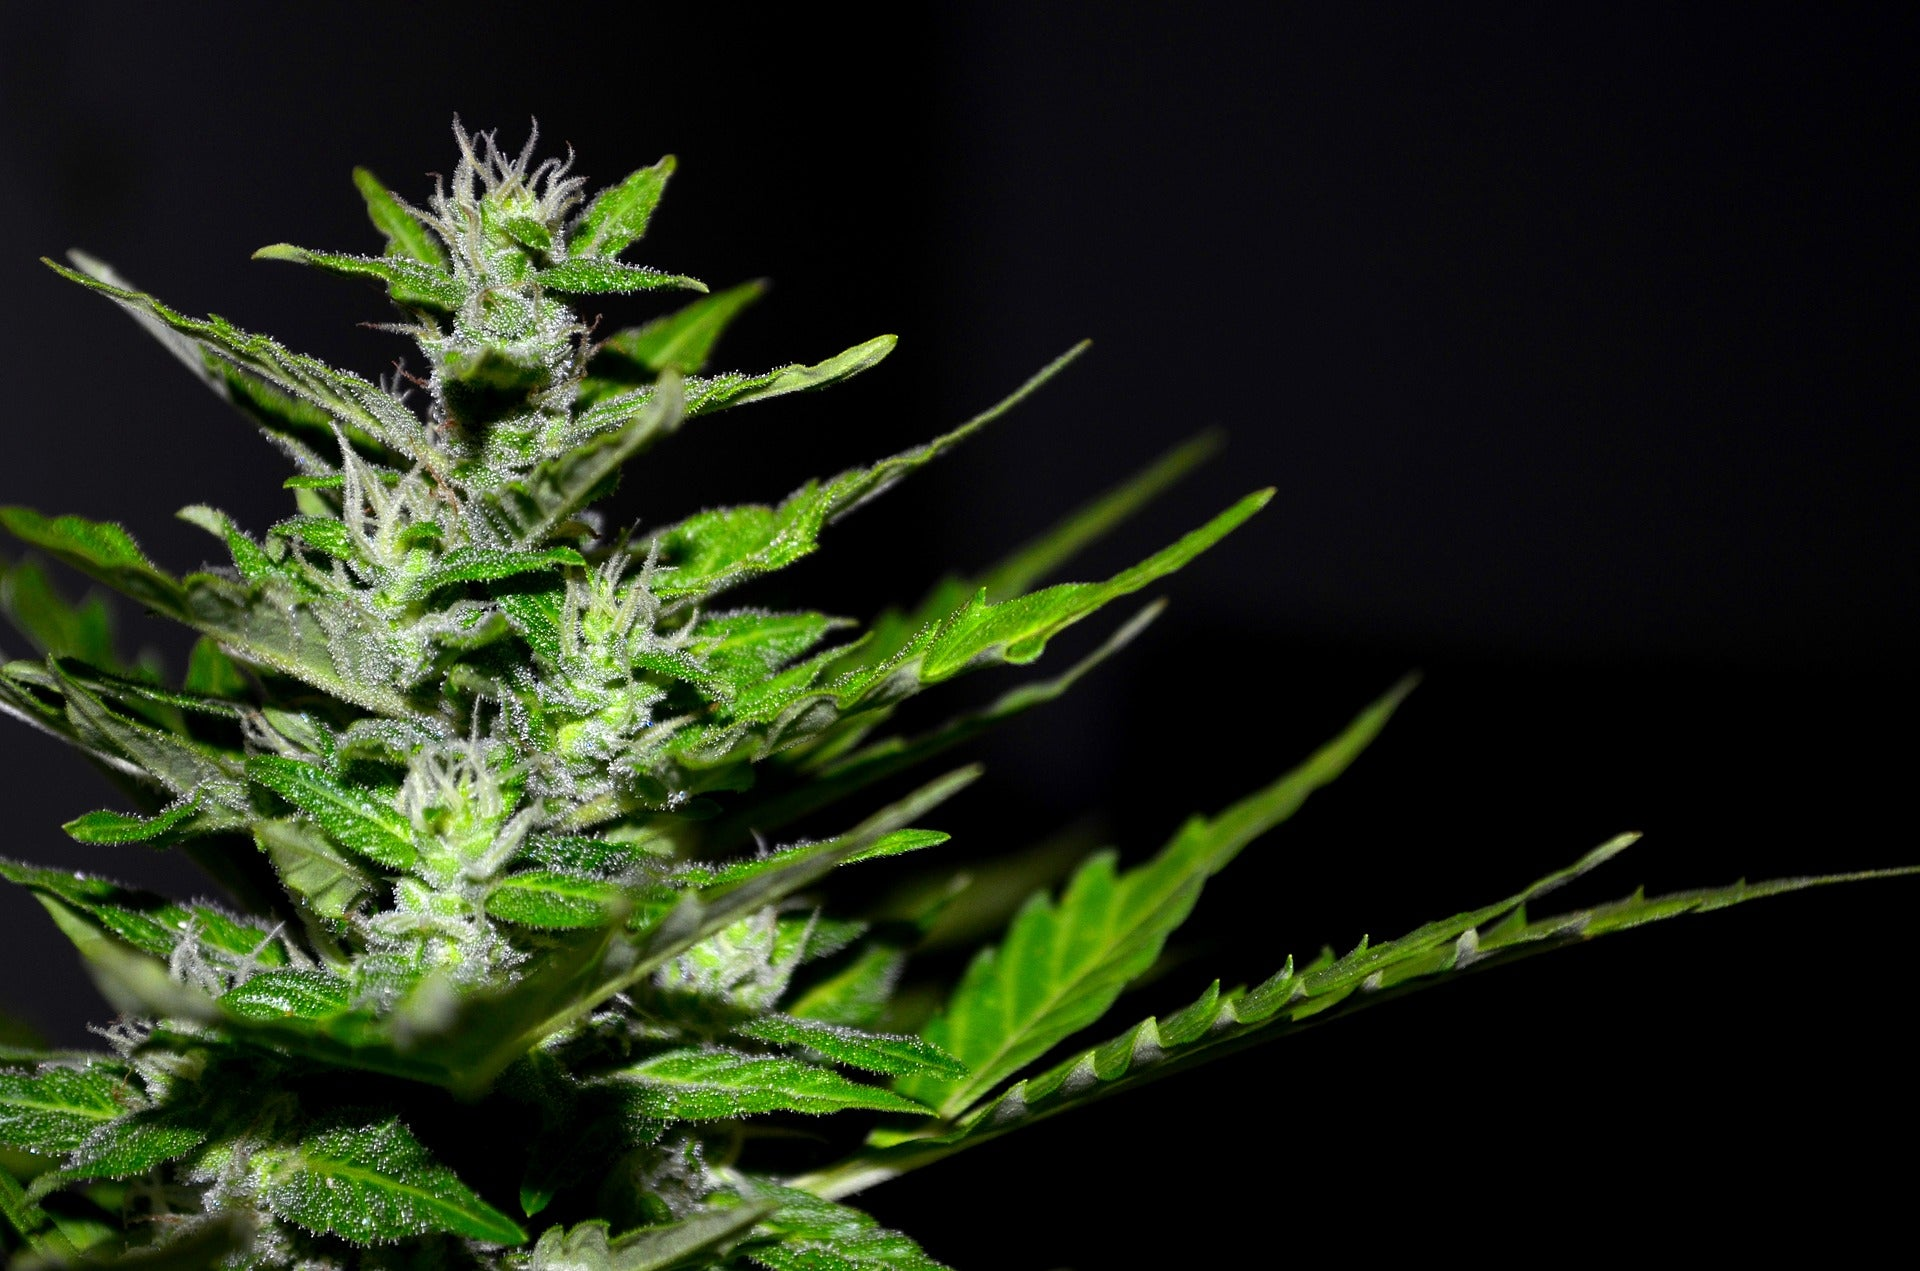 ACB), (ALEAF) - Cannabis Countdown: Top 10 Marijuana Stock News